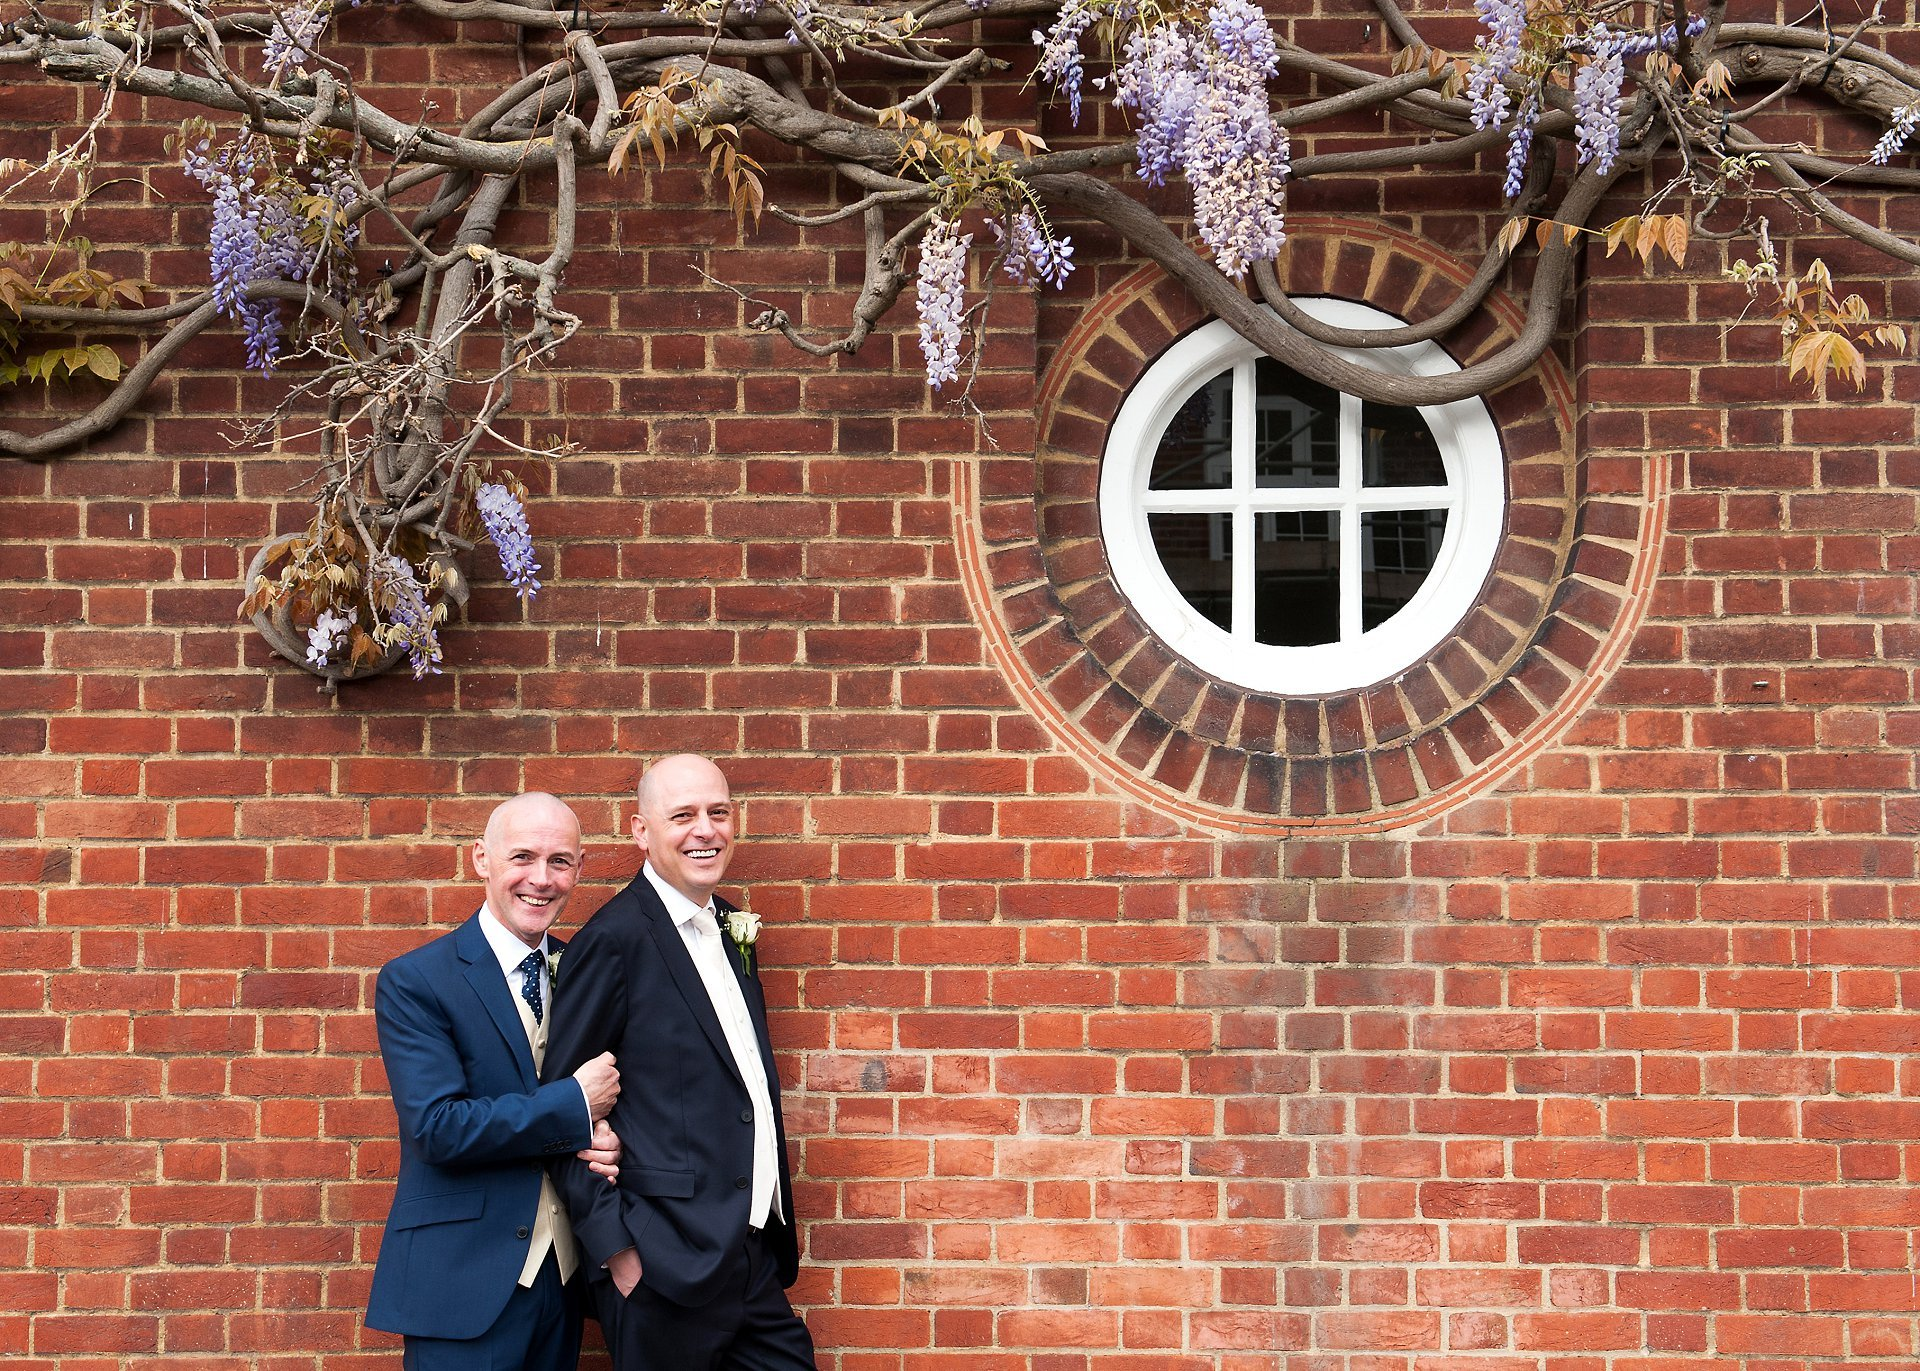 George and Jose in Chelsea after their Spring wedding at Chelse Old Town Hall